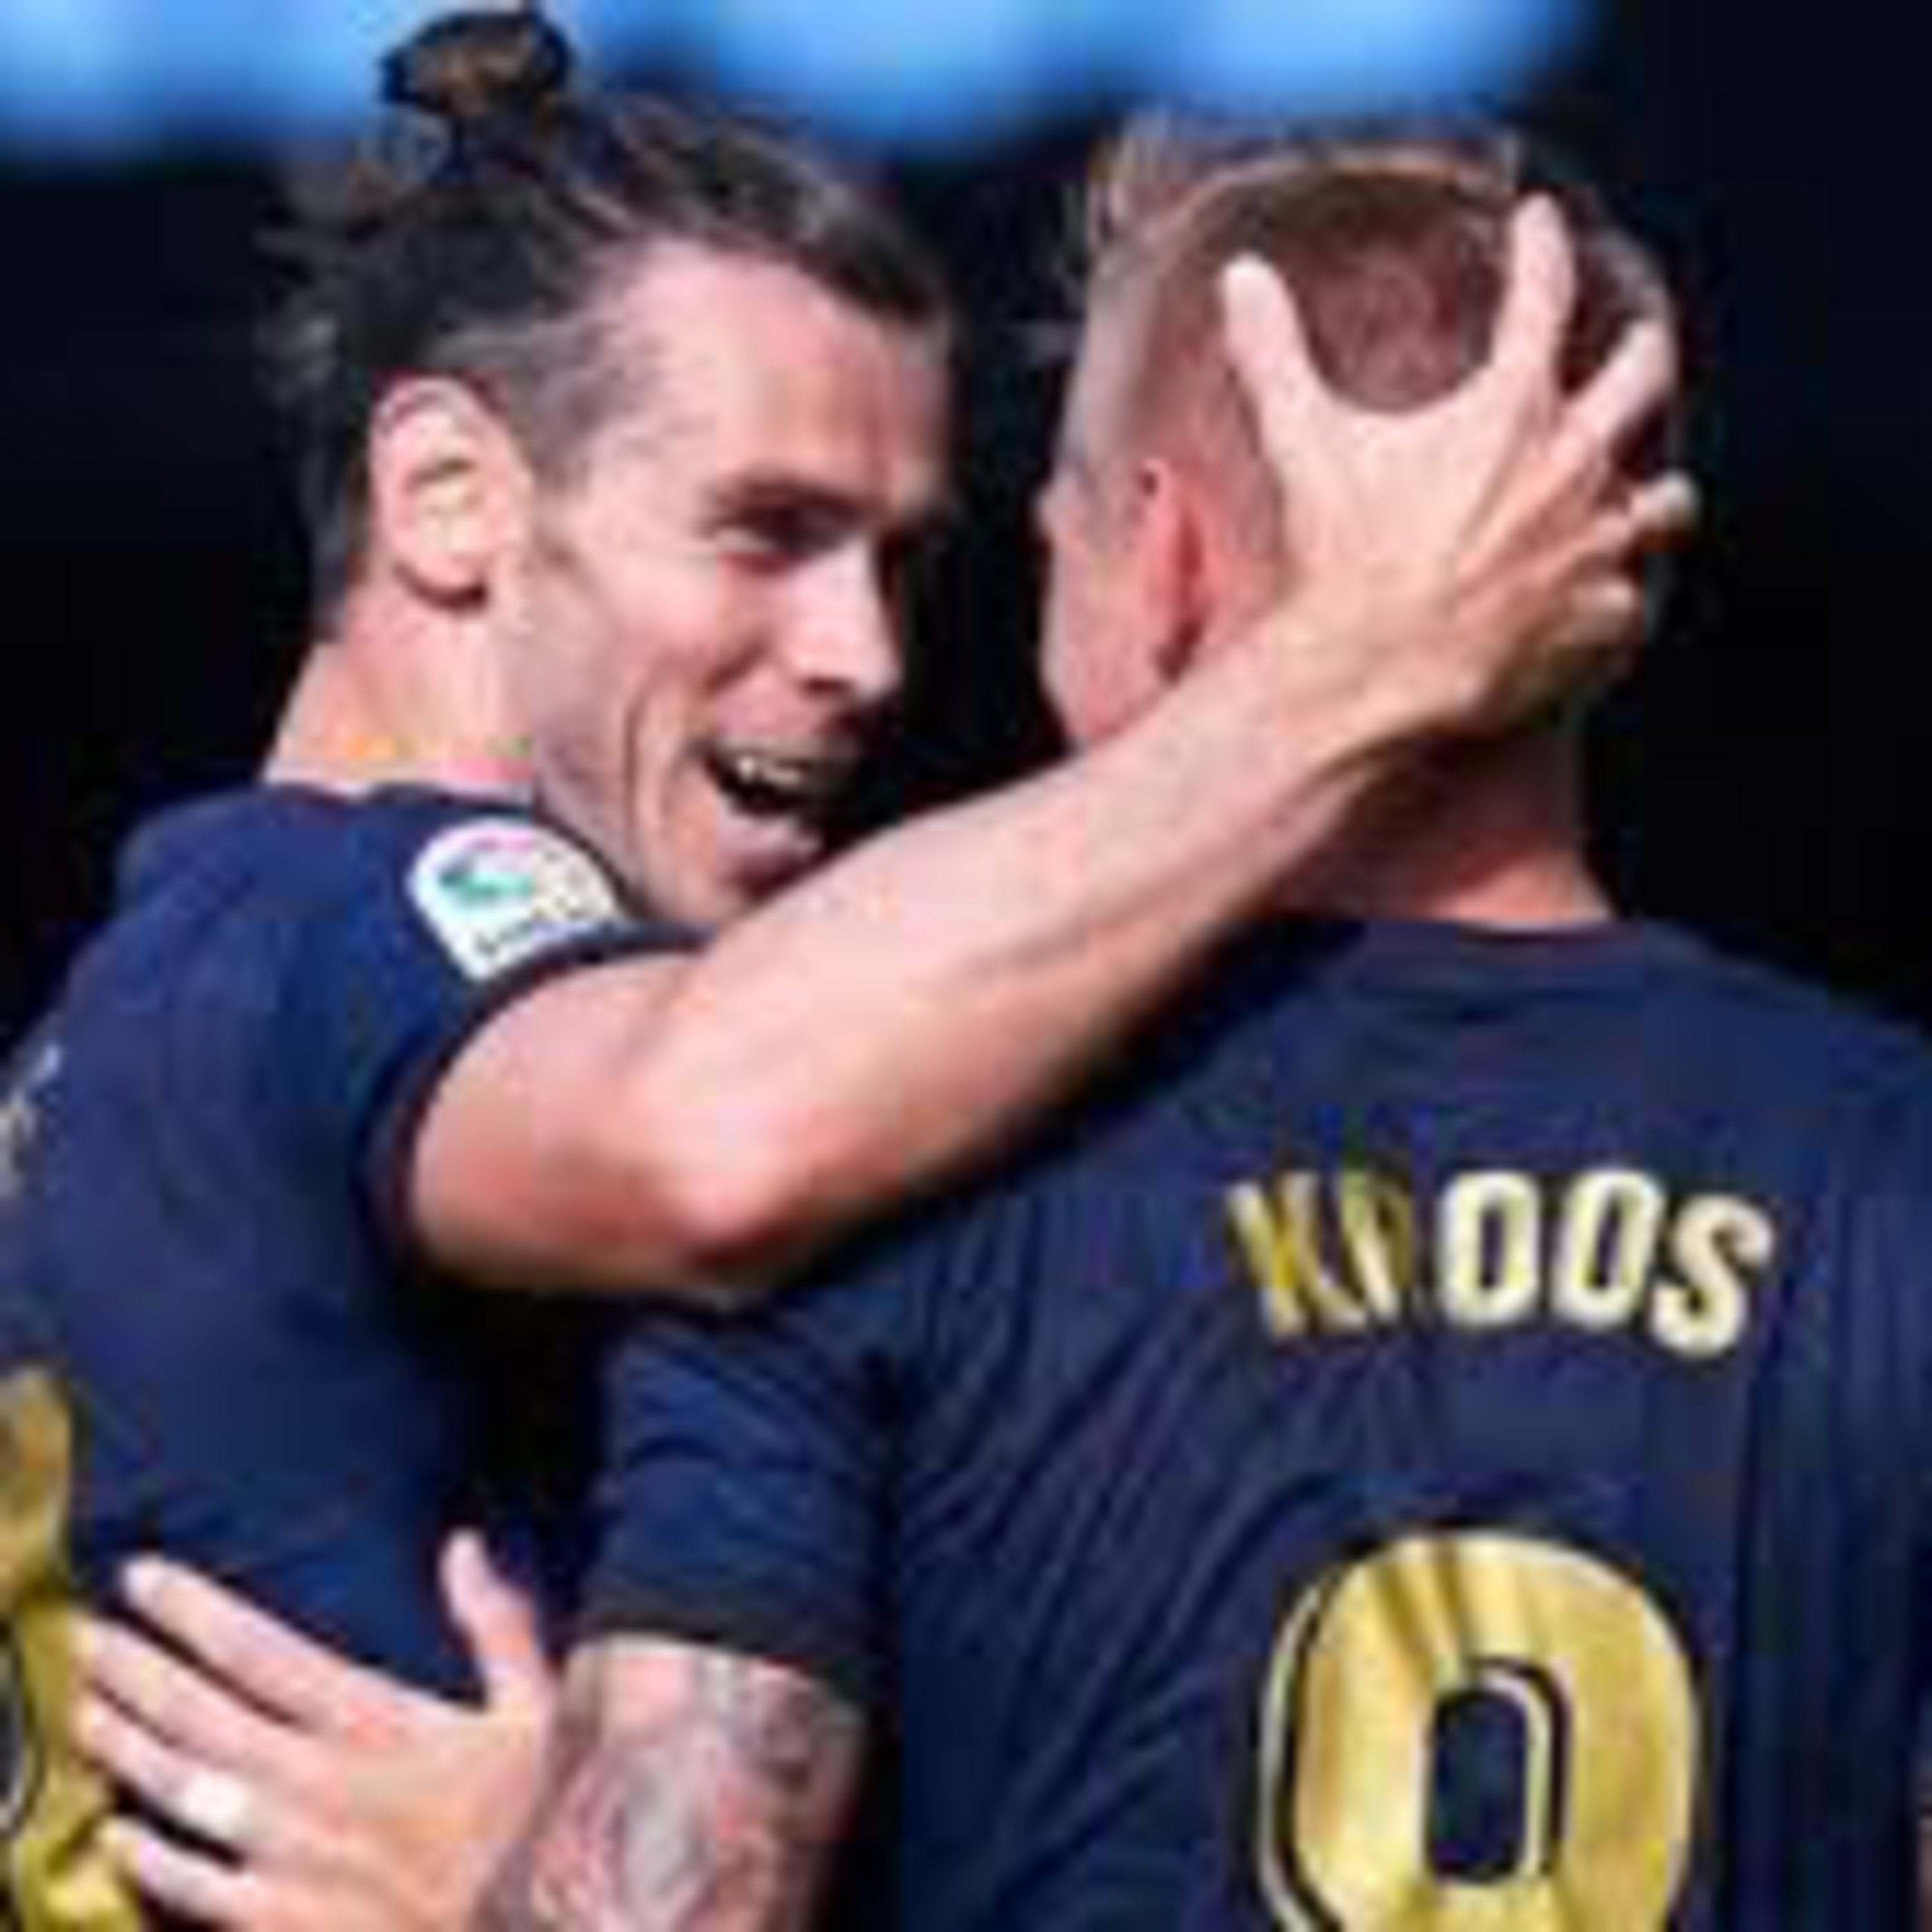 Madrid beat Celta Vigo on the opening day of the season, Zidane reveals Bale will stay this season.